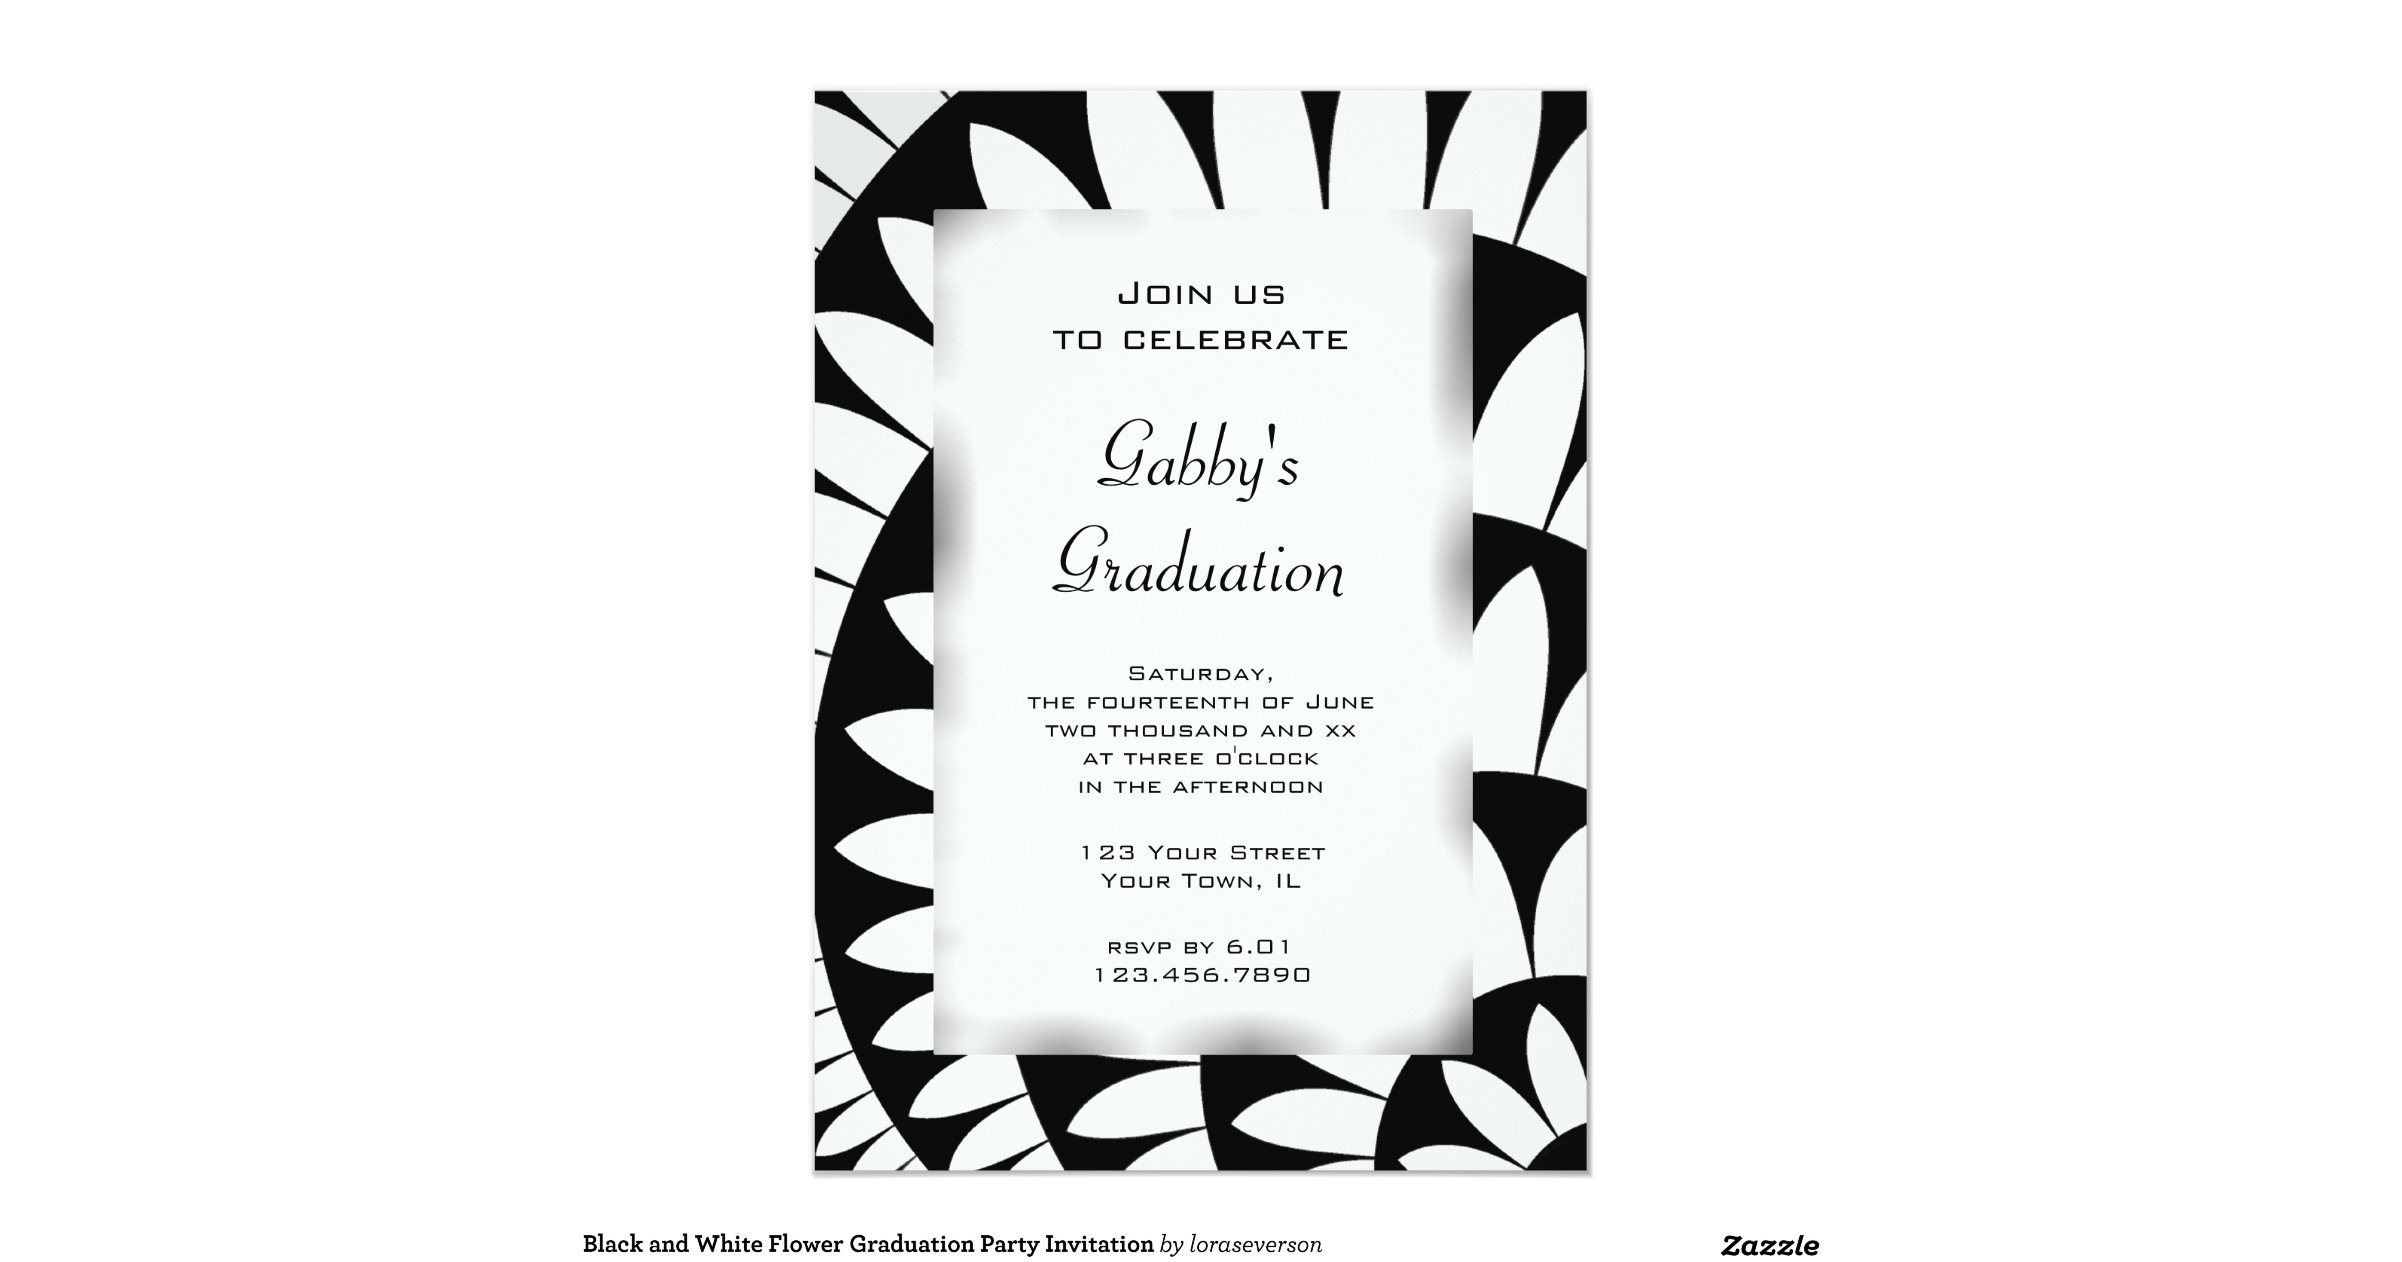 black_and_white_flower_graduation_party_invitation